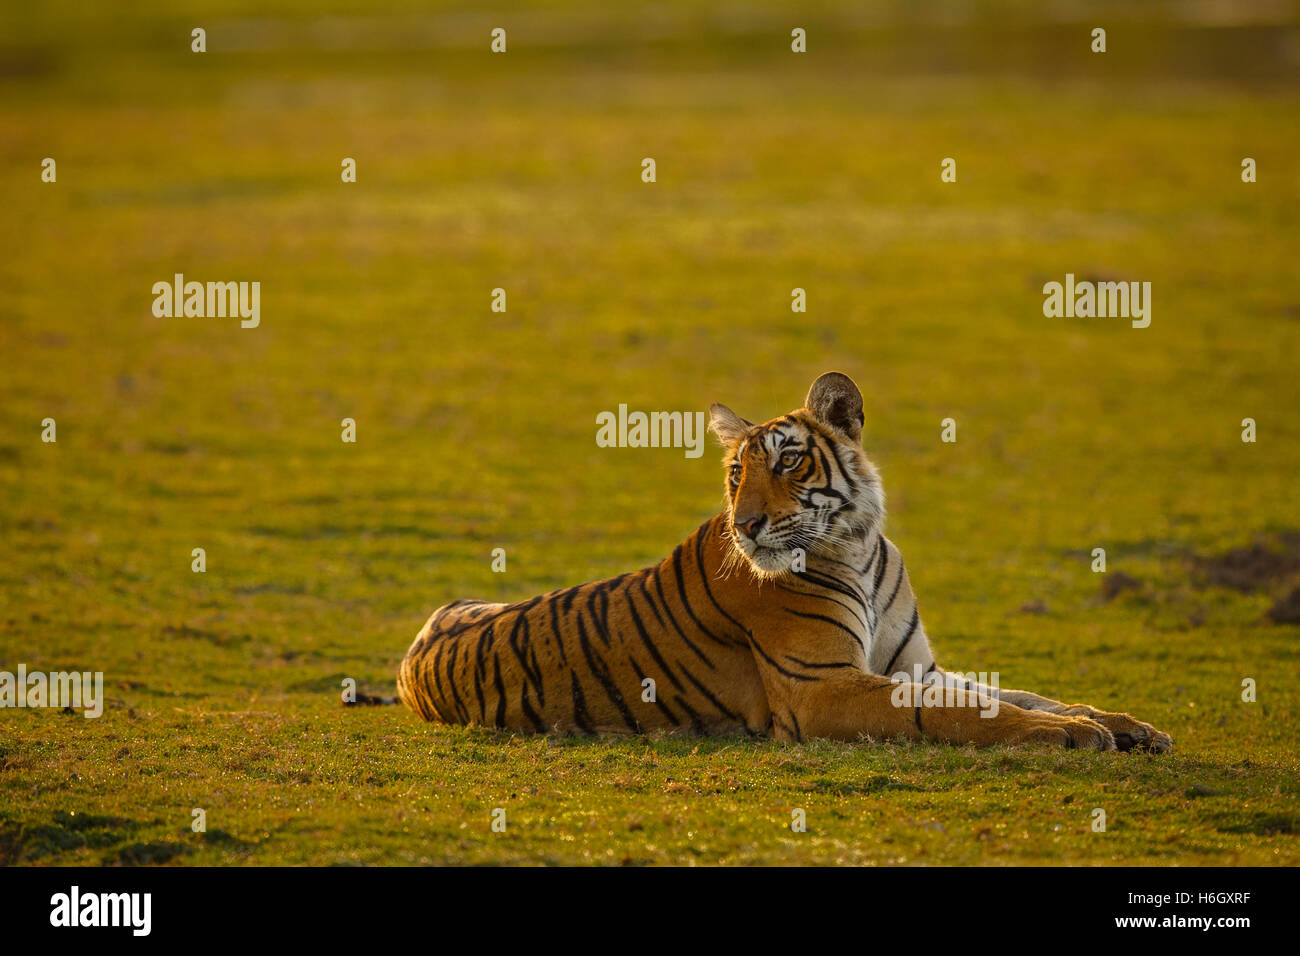 Tiger in a beautiful golden light in Ranthambhore National Park in India. Stock Photo